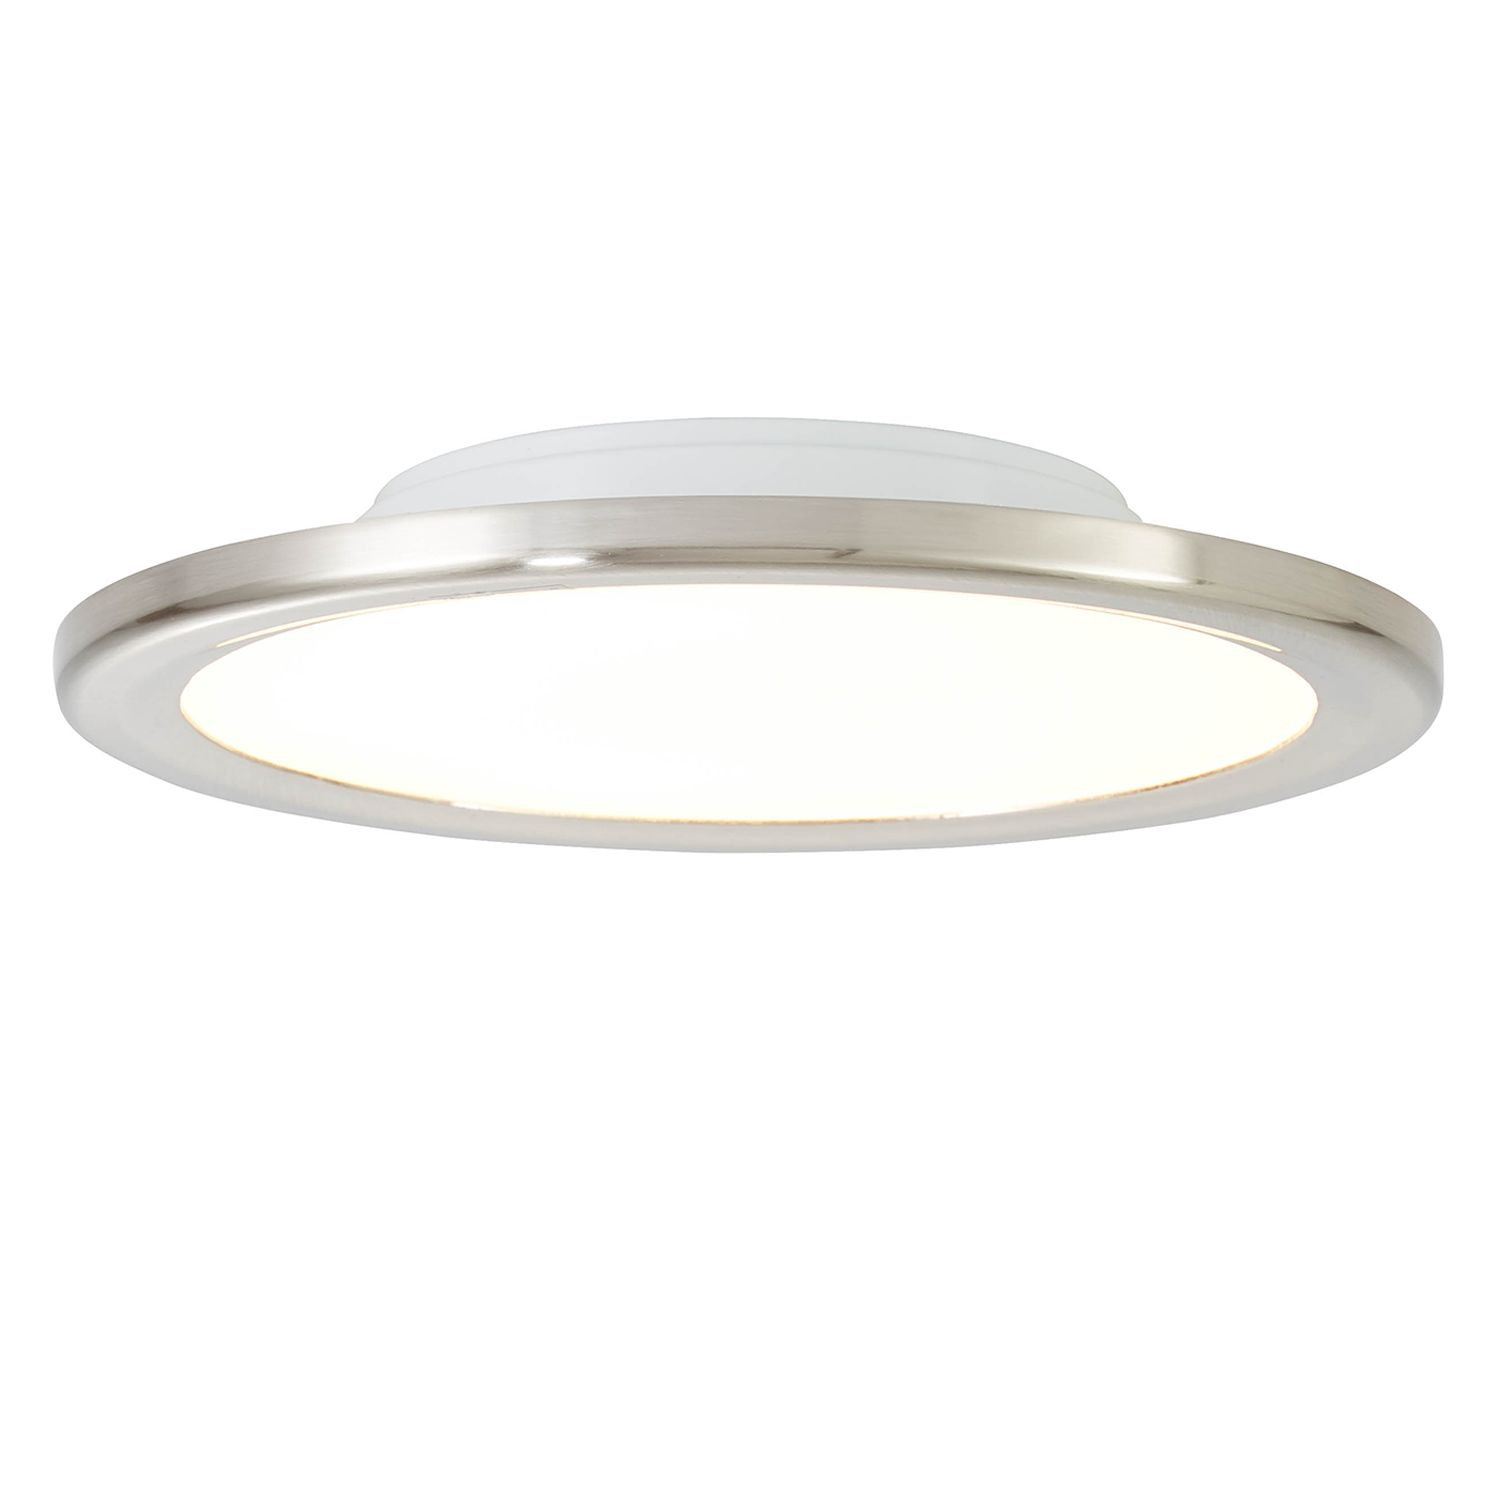 home24 LED-Deckenleuchte Neptun Shine II